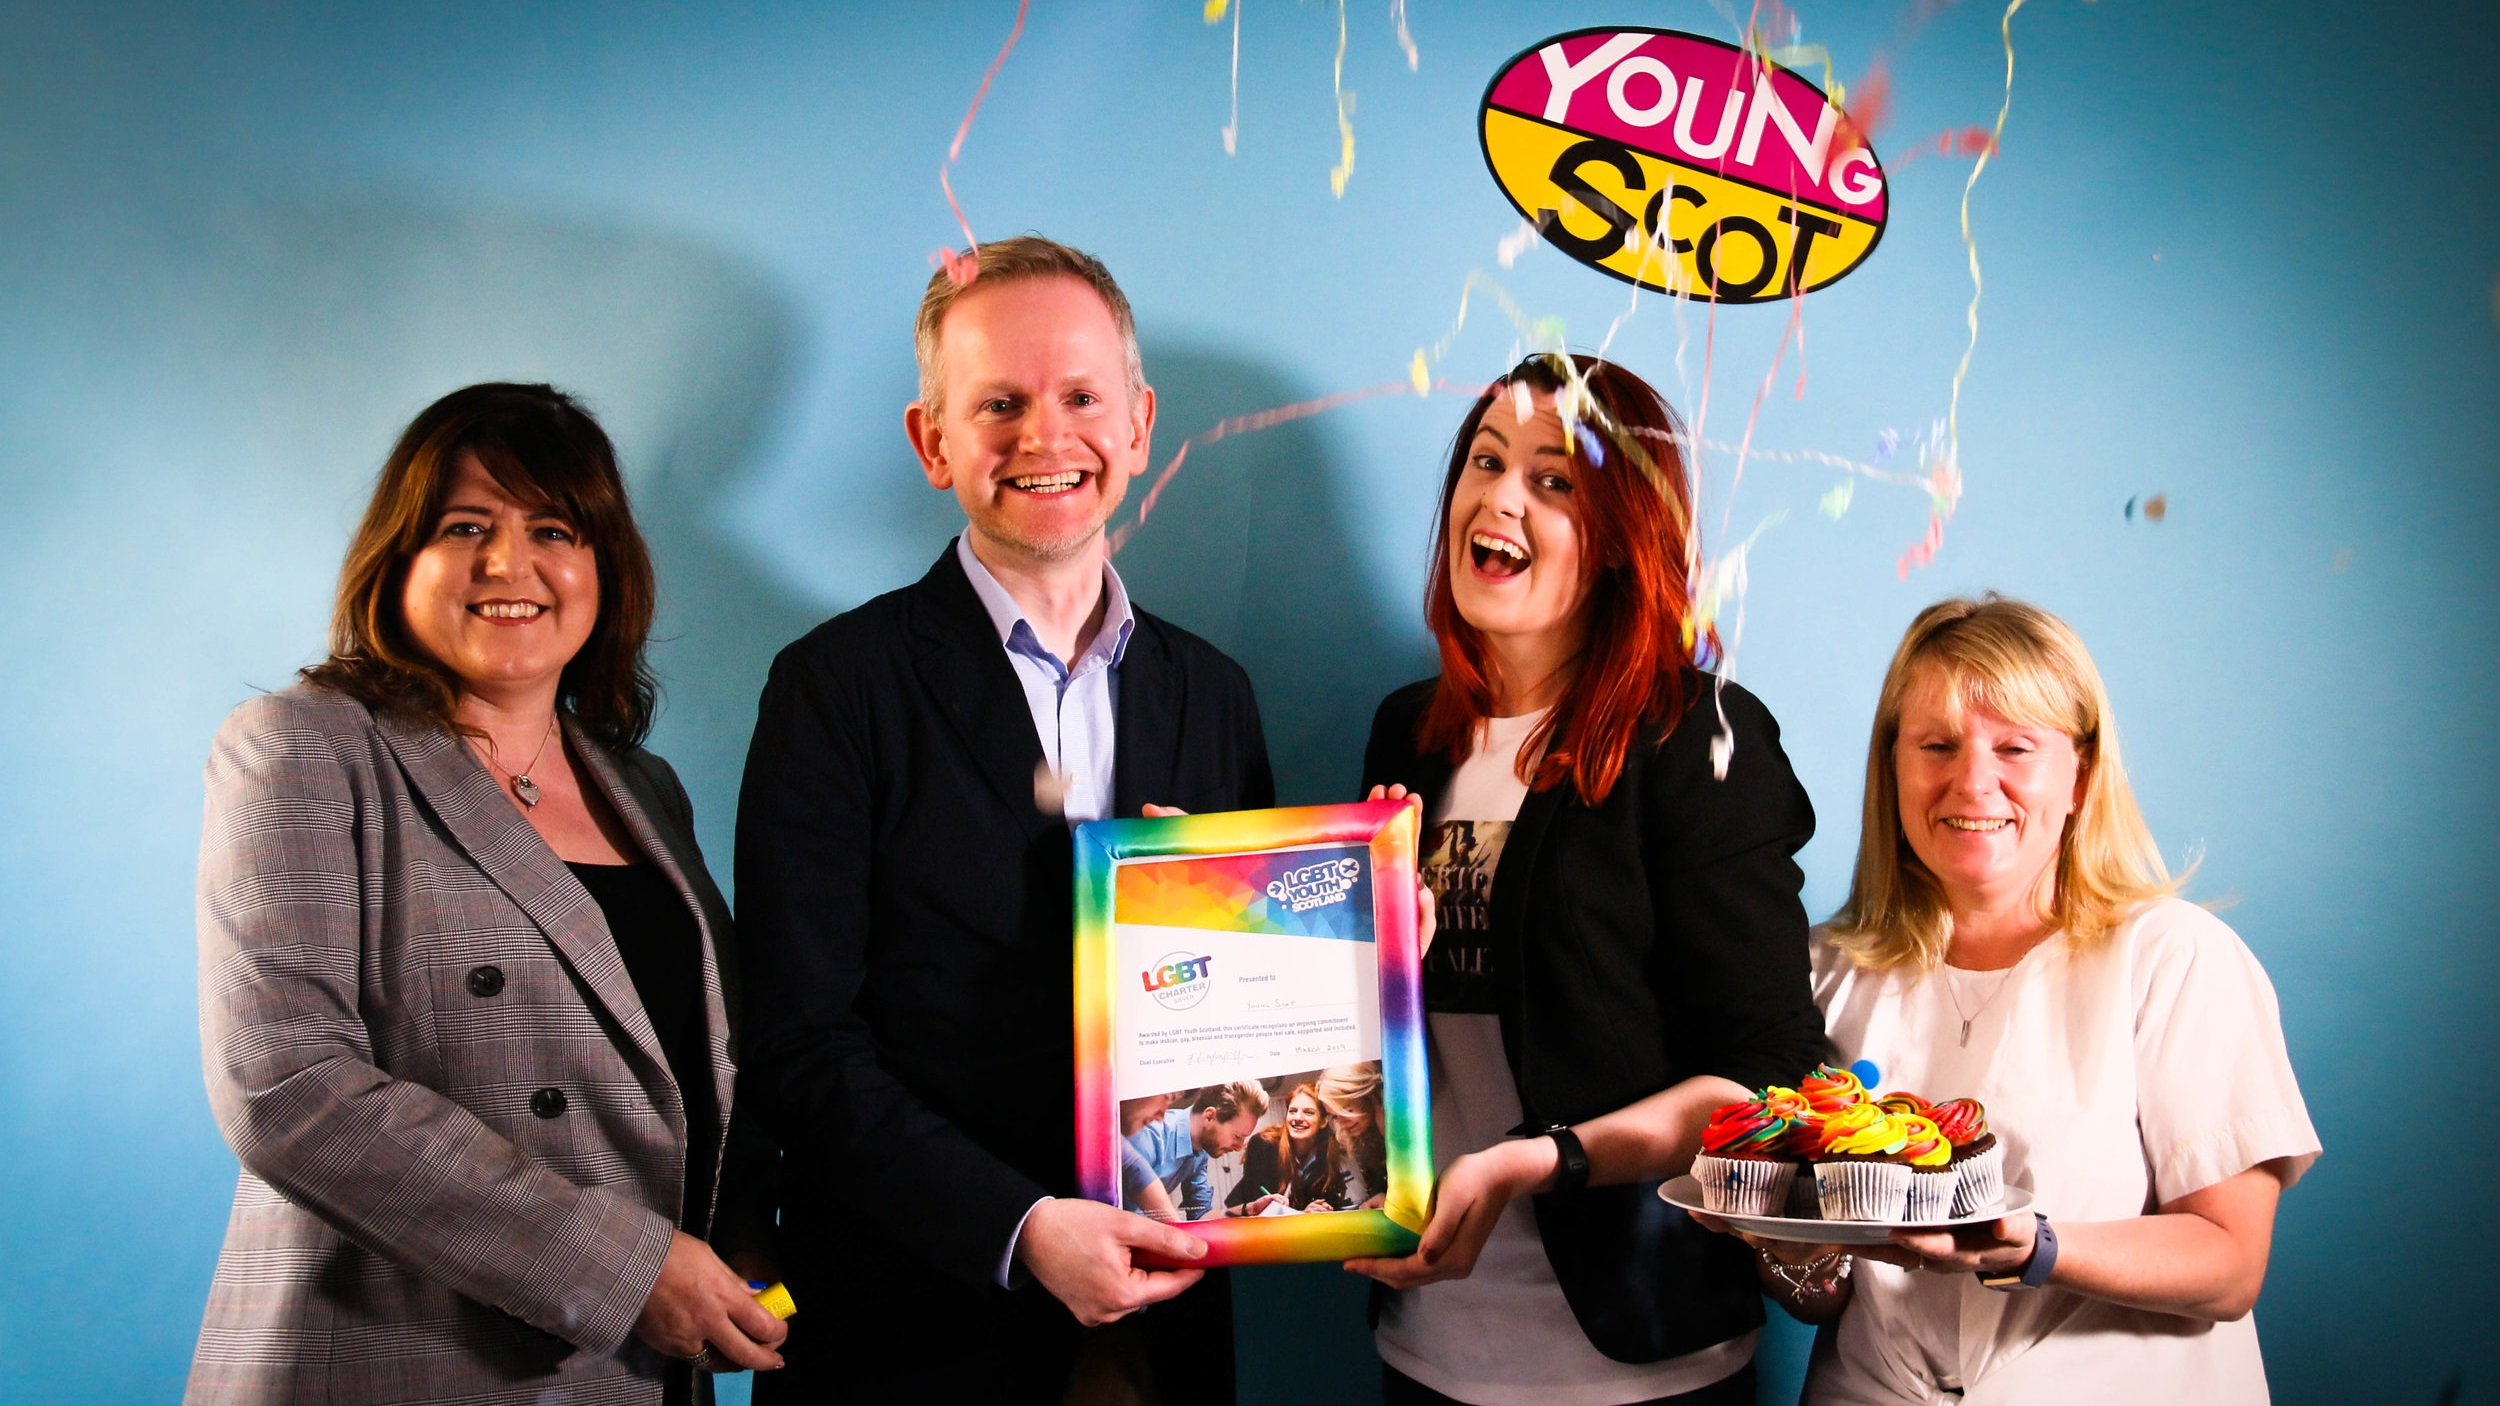 Working at Young Scot - Learn more about our values, staff benefits and the fun stuff!